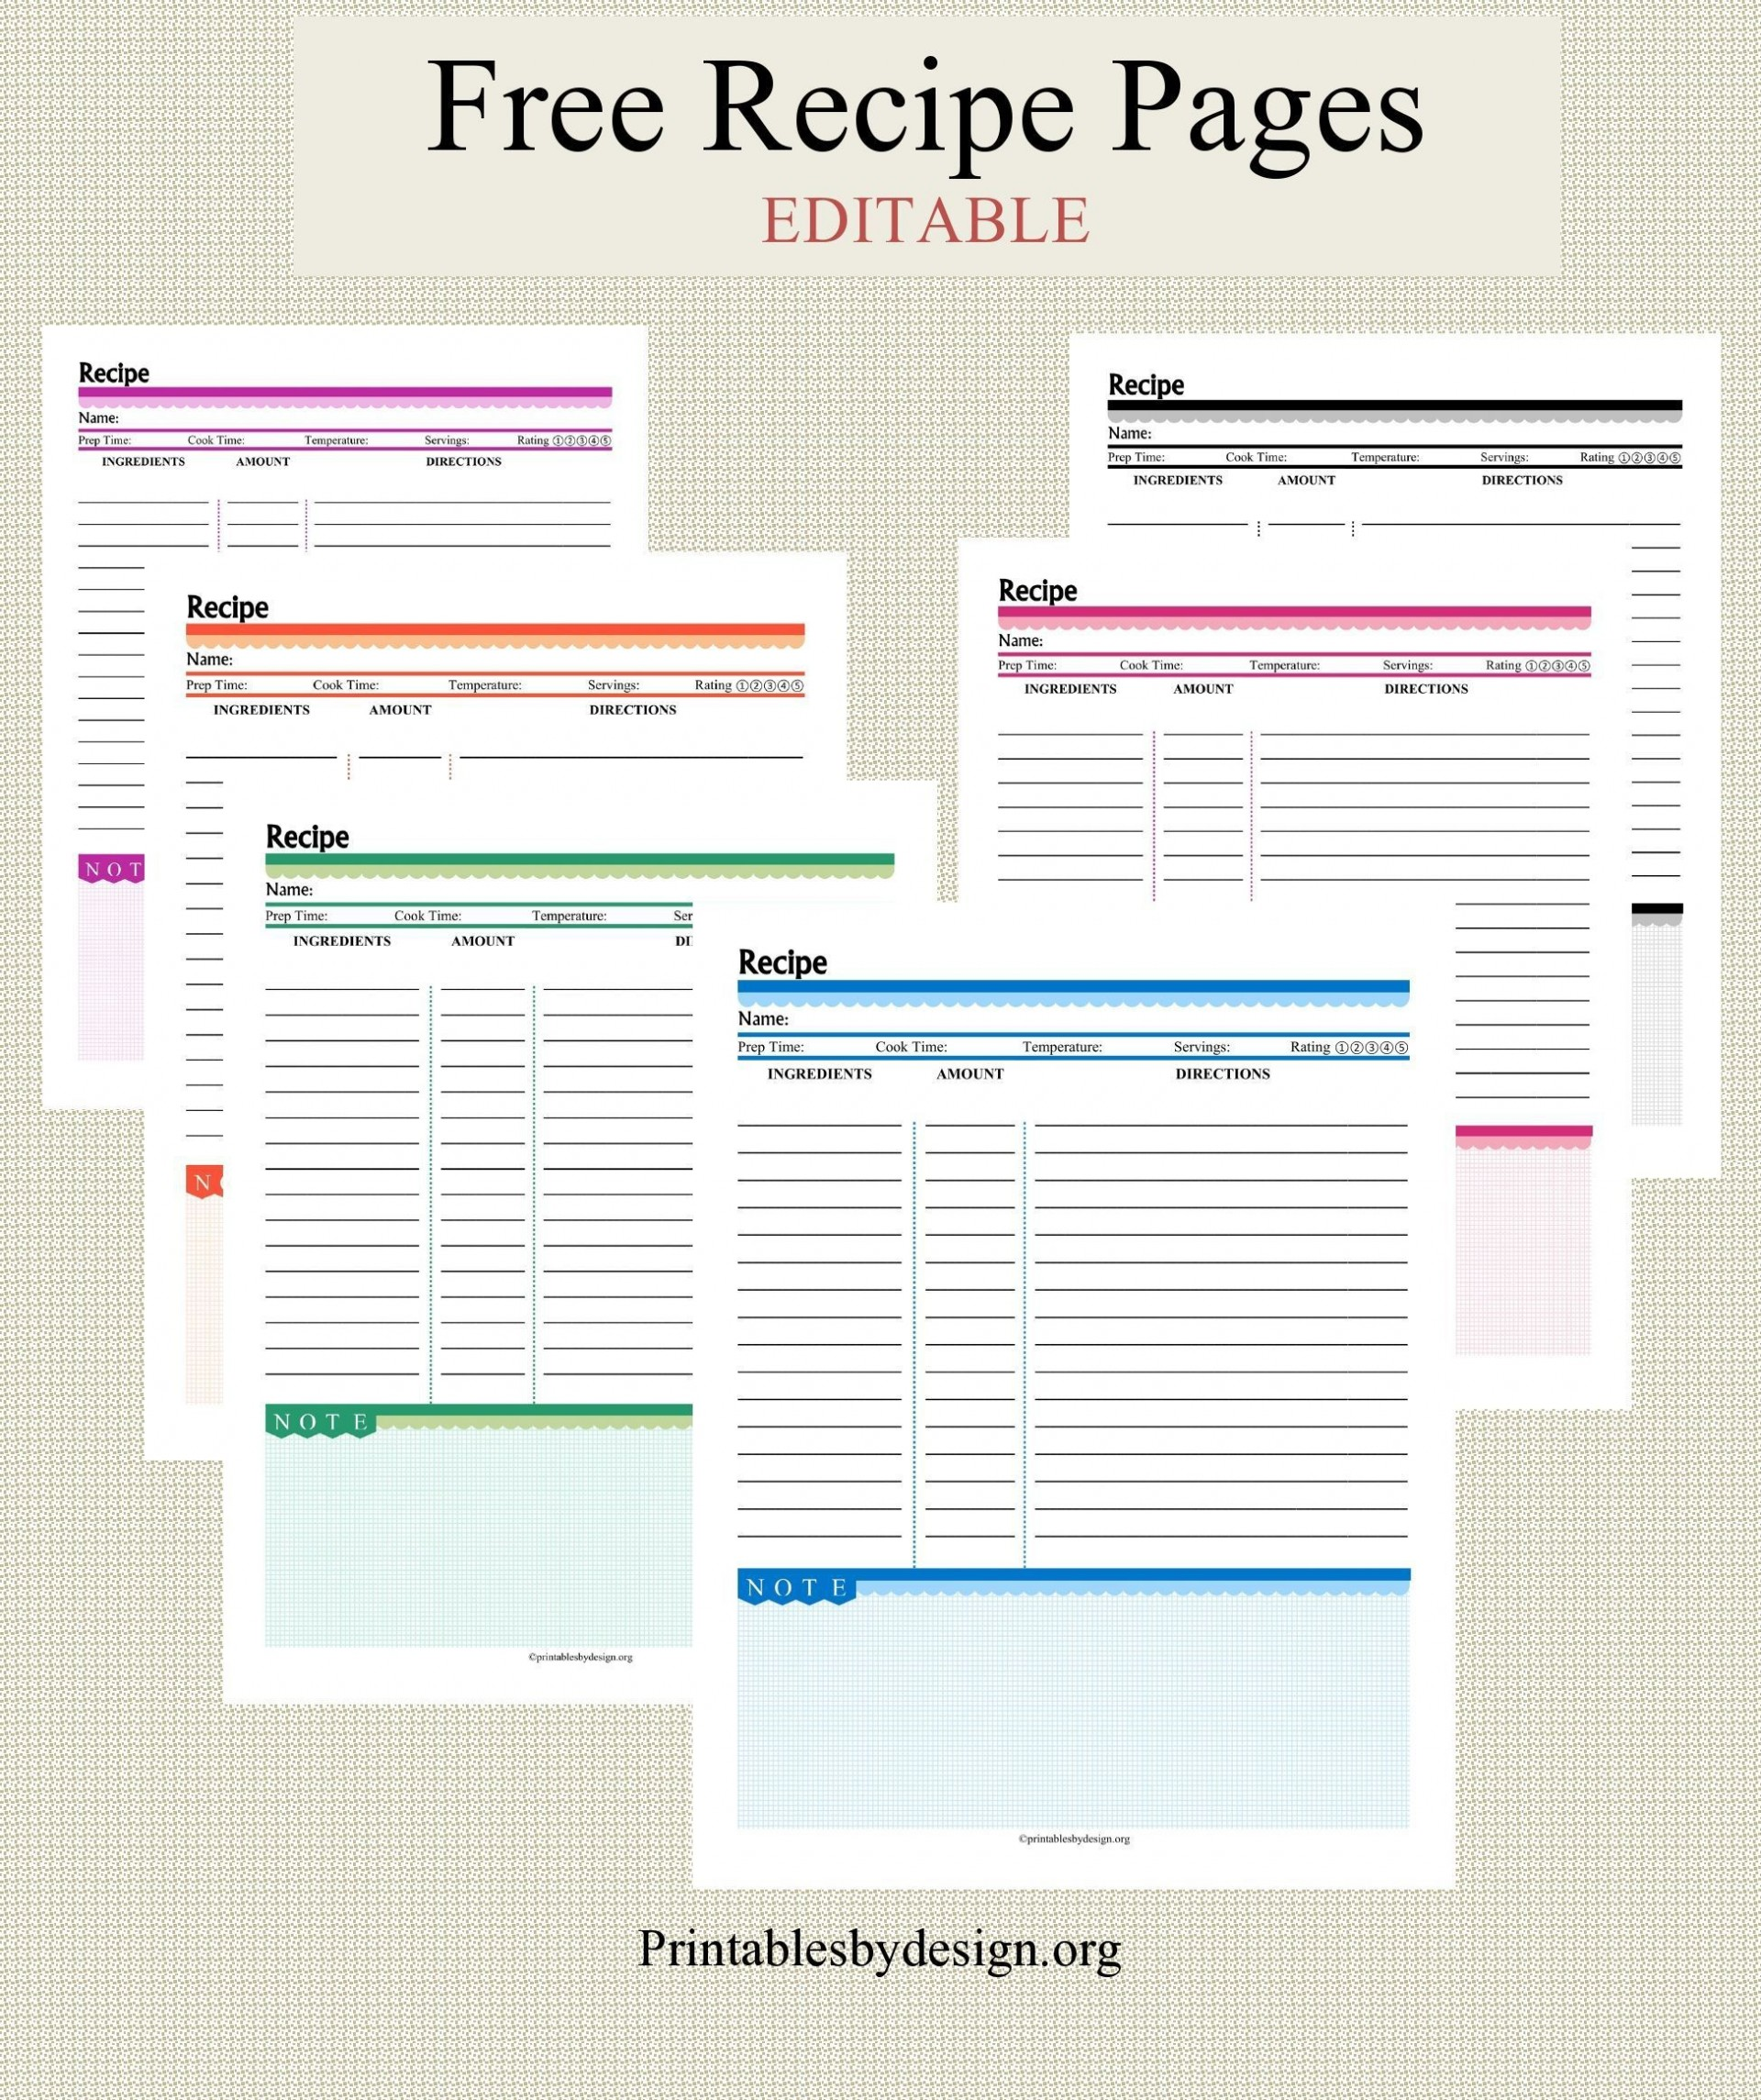 001 Impressive Free Recipe Book Template High Definition  Editable Cookbook For Microsoft Word Indesign1920